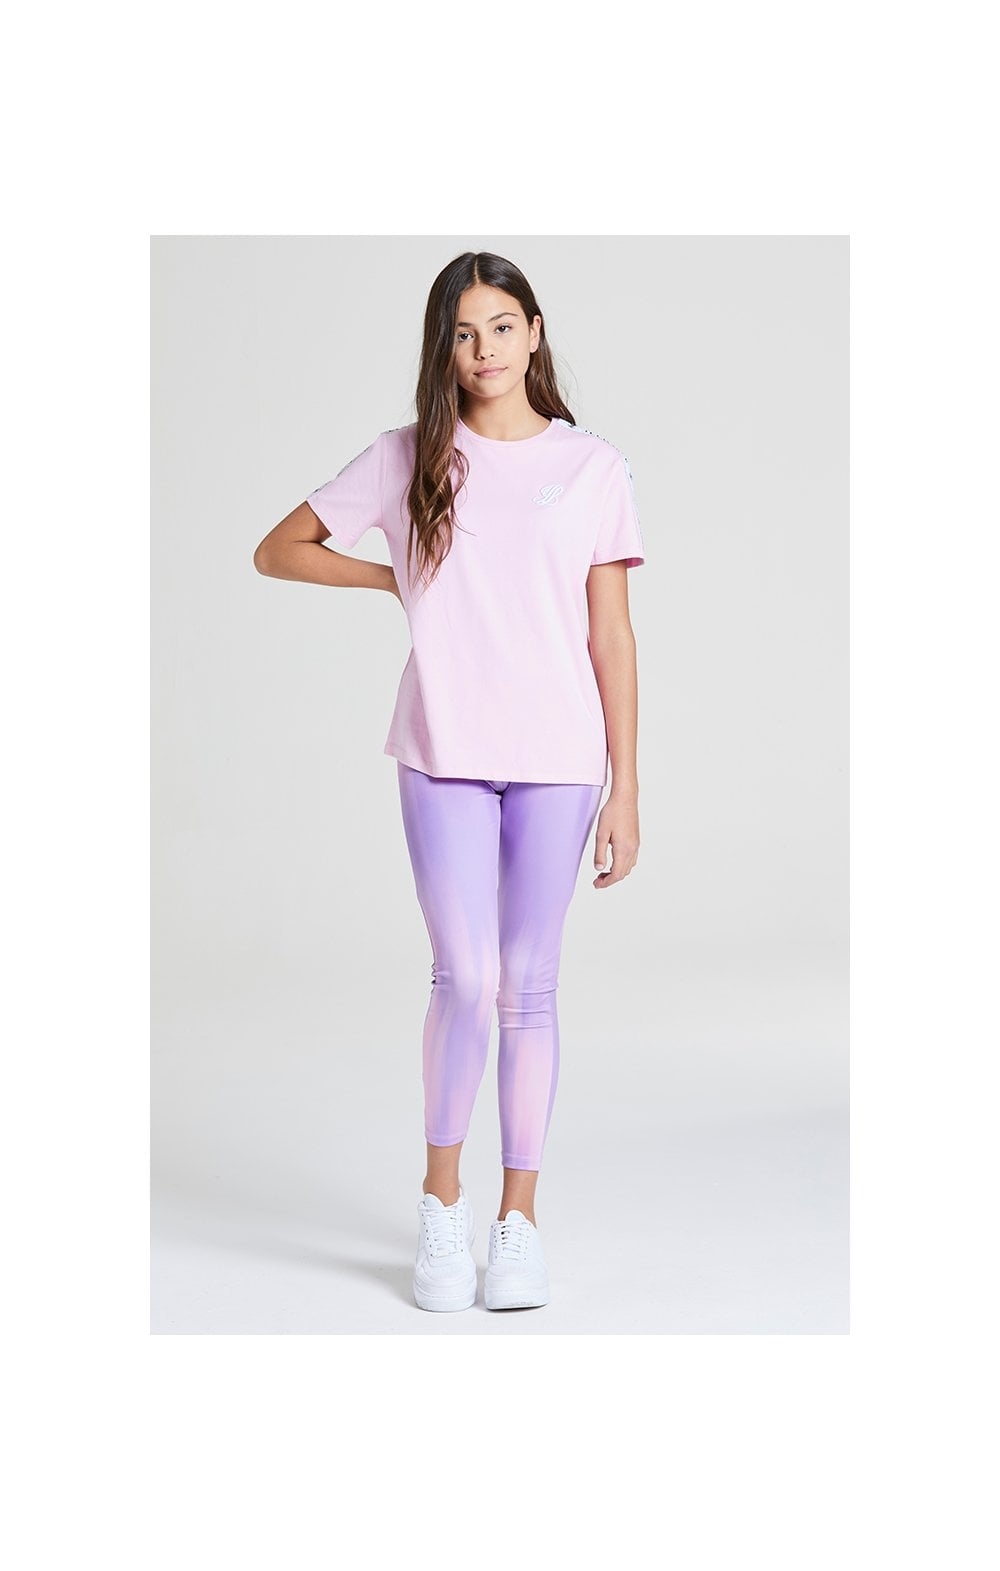 Illusive London BF Fit Taped Tee -  Pink (2)